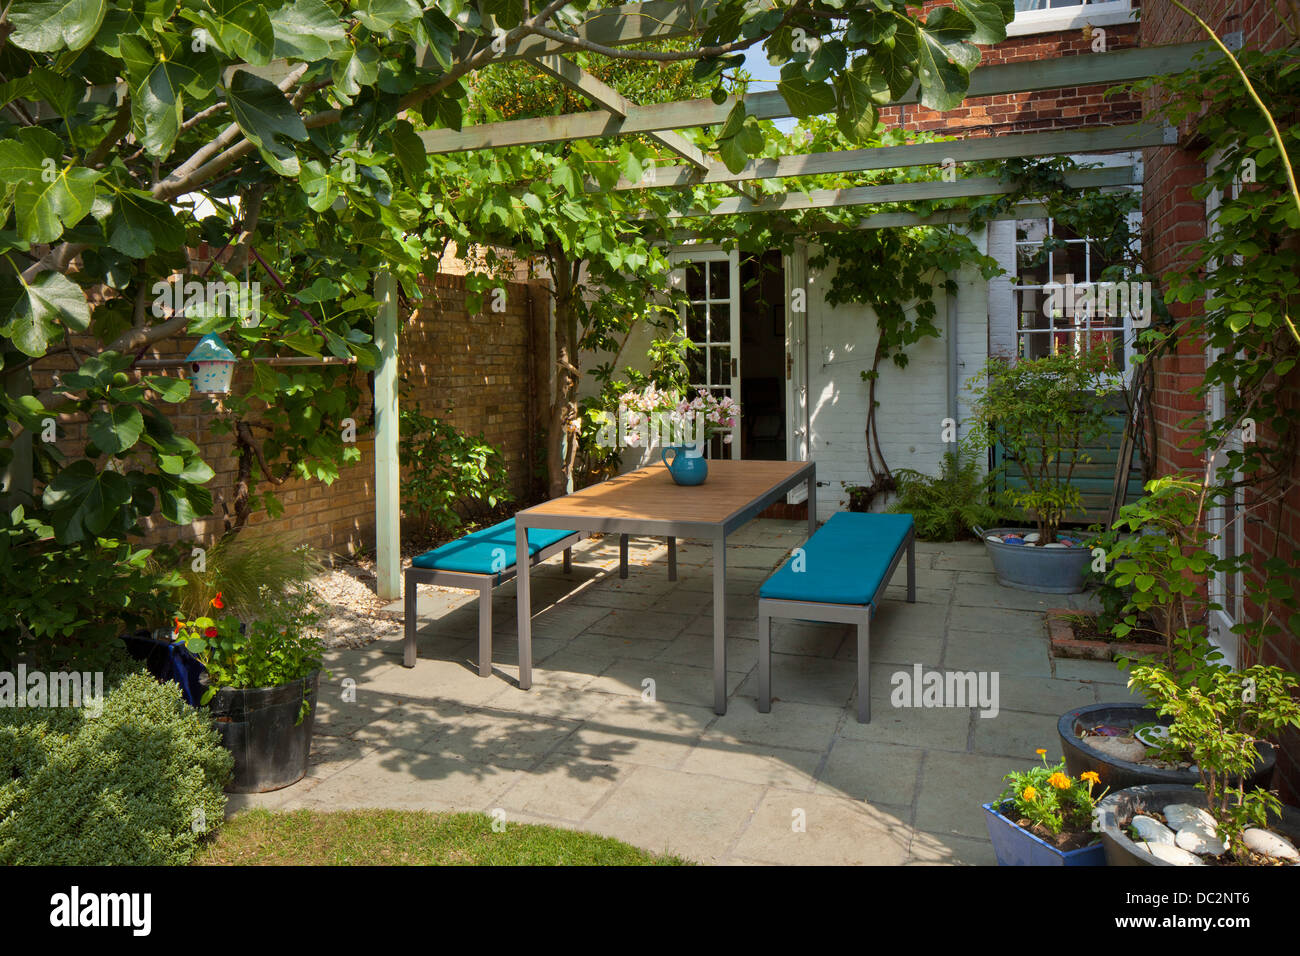 Contemporary Garden Furniture Under Wooden Pergola And Shady Patio In  English Garden, England